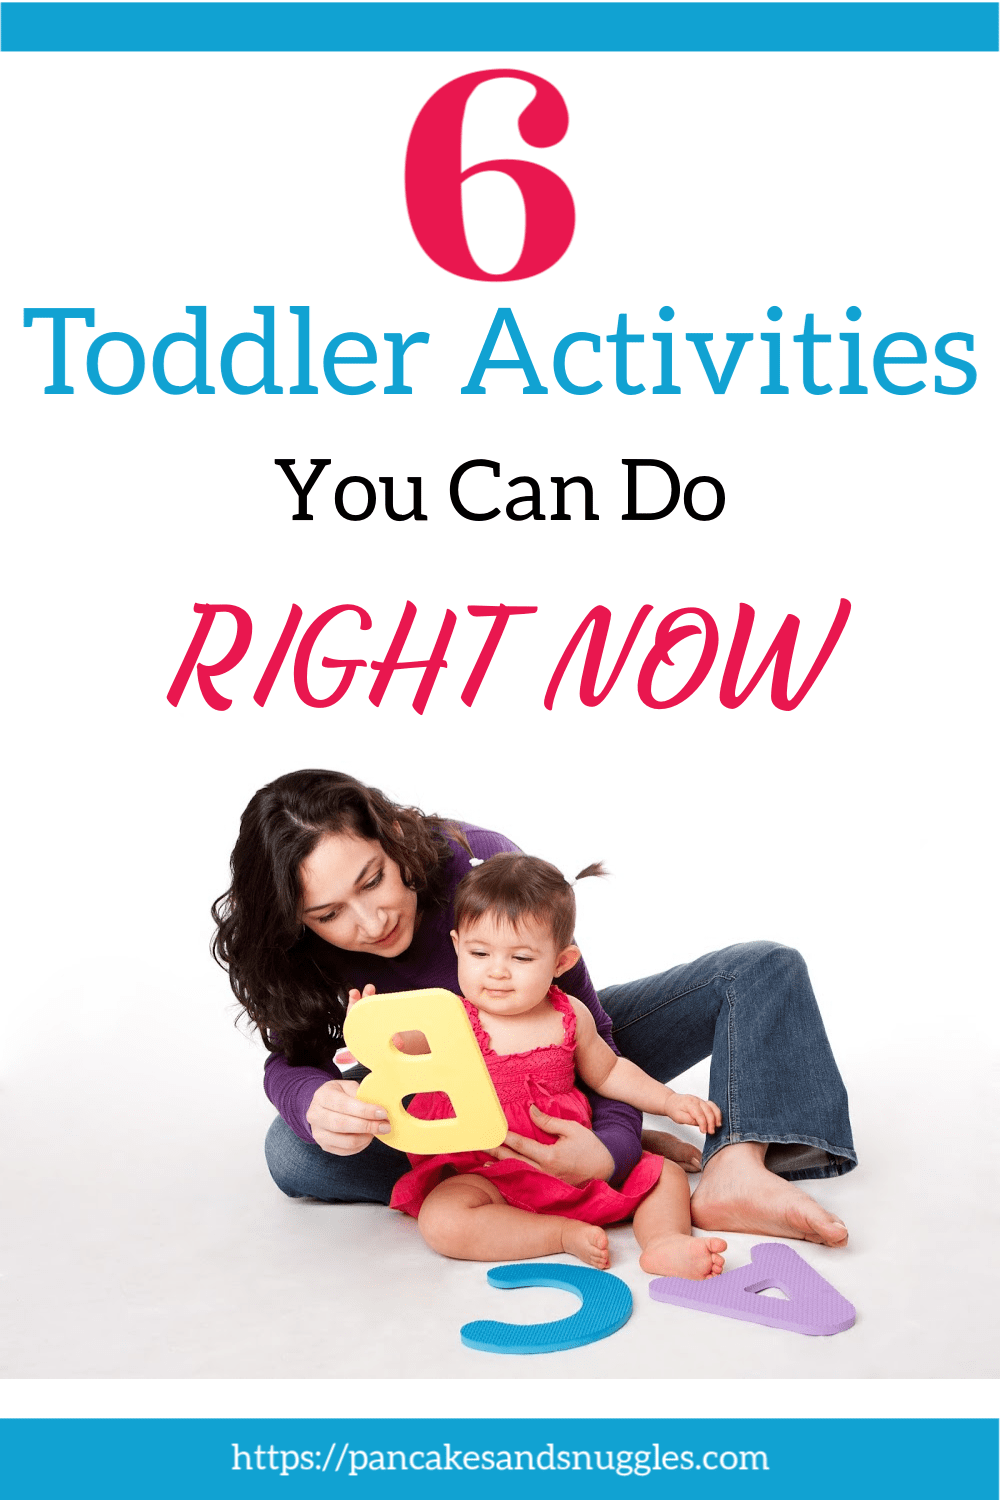 6 Toddler Activities You Can Do Right Now